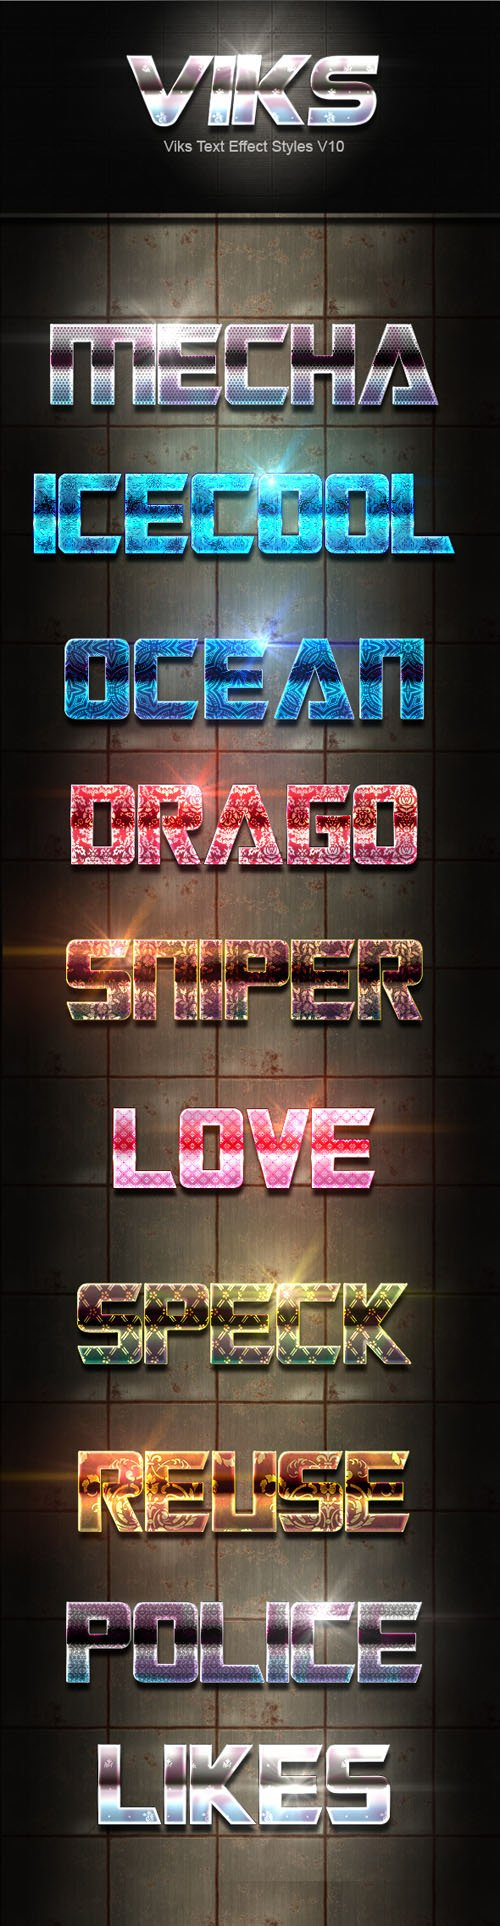 Graphicriver - Viks Text Effect Styles V10 20178298